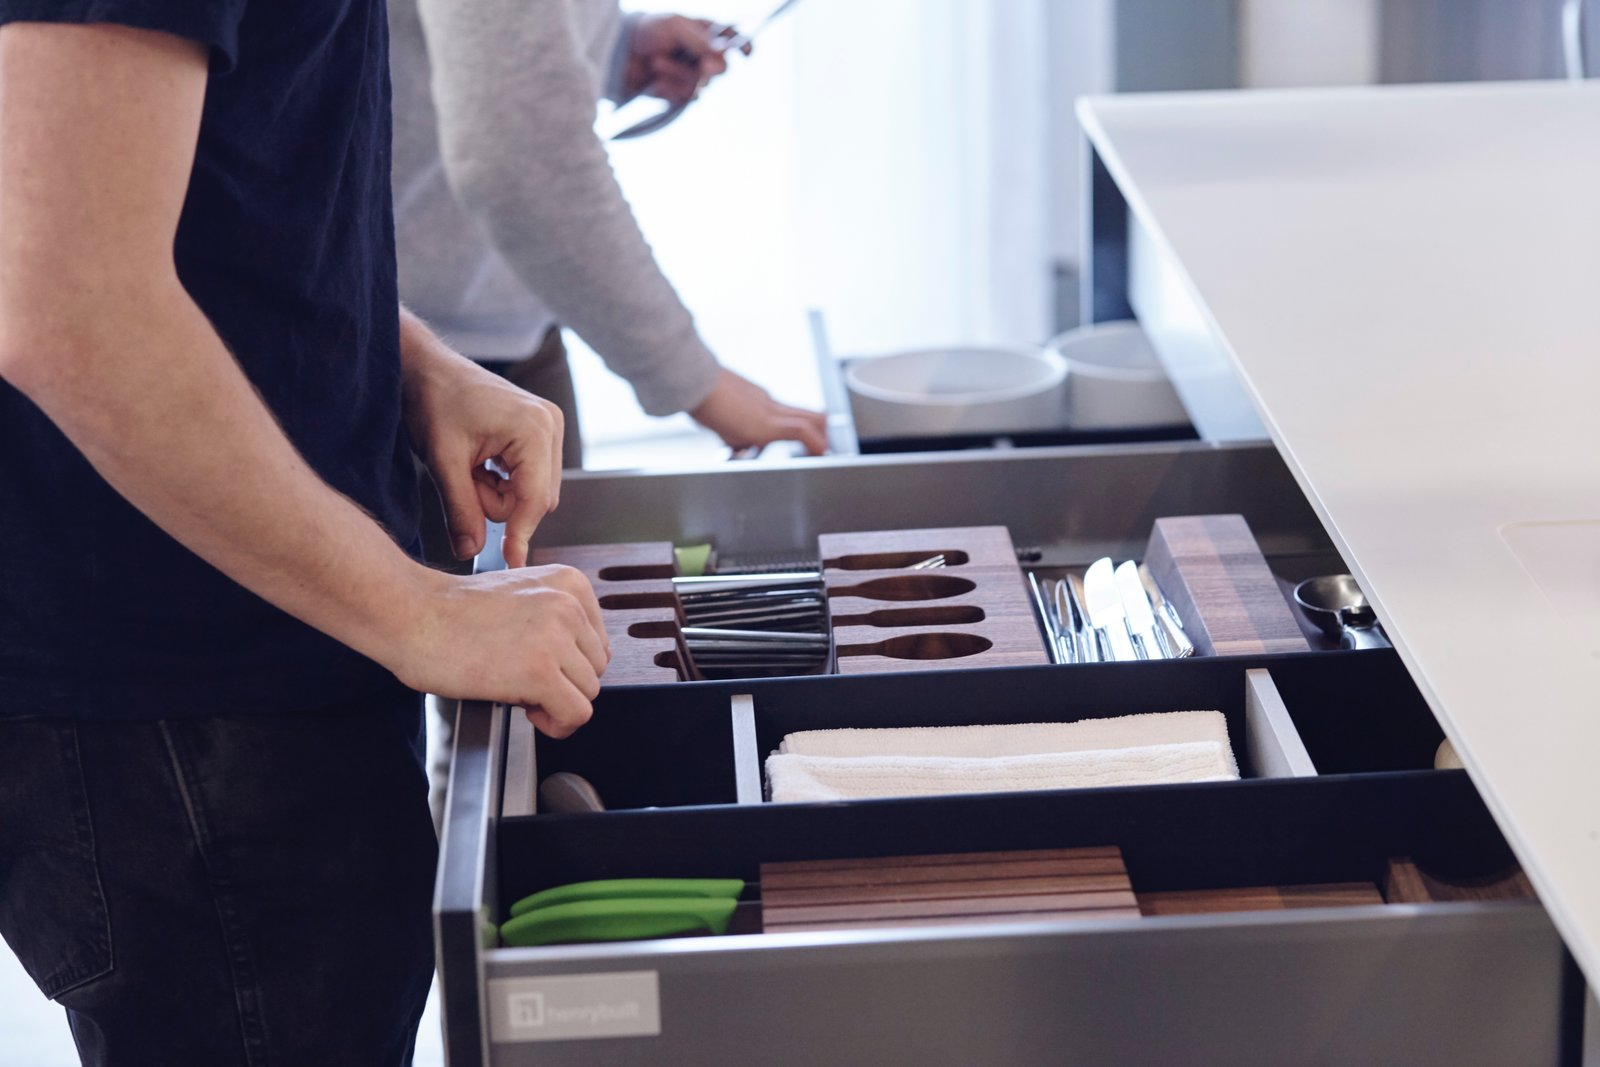 Their systems include award-winning components like the Drawer Accessory System, shown here with a construction of Paperstone and solid surface acrylic—both materials traditionally used in countertops. This addition extends high-performance function to the interior of a system, where users actually interact with it the most. As homeowners' needs evolve, they can arrange the reconfigurable dividers in any way they desire. The pieces simply snap back together, thanks to a number of small magnets that are carefully embedded.  Photo 5 of 8 in What Goes On Behind-the-Scenes at Henrybuilt's Seattle Test Kitchen